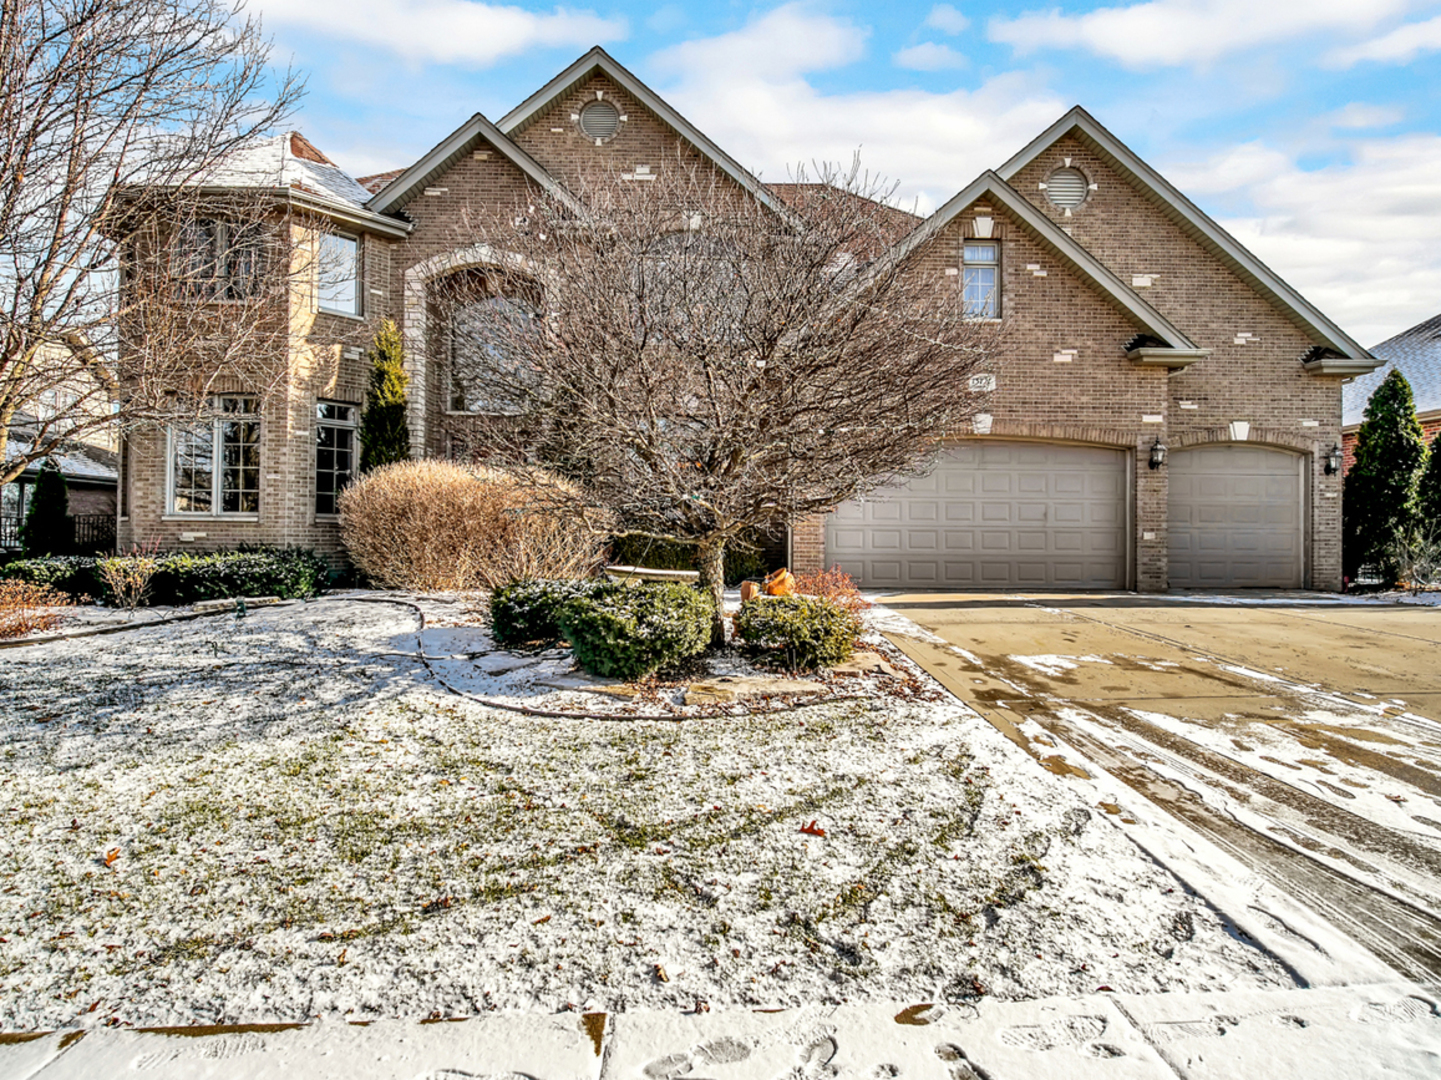 13721 Tallgrass Trail, Orland Park, Illinois